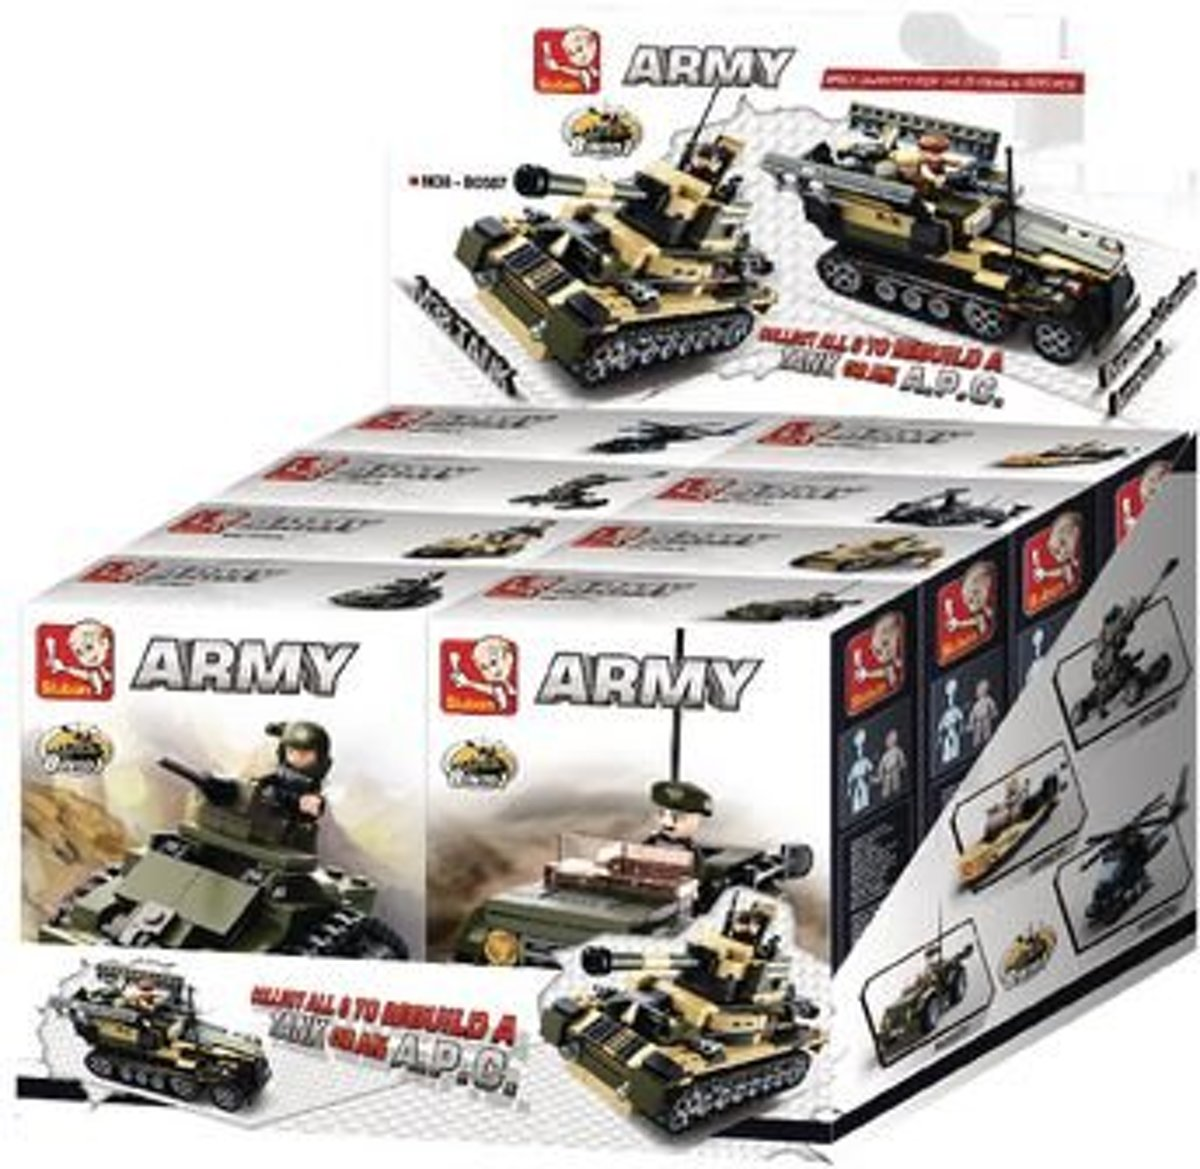 M38-B0587 Bouwstenen Army 8-into-1 Display